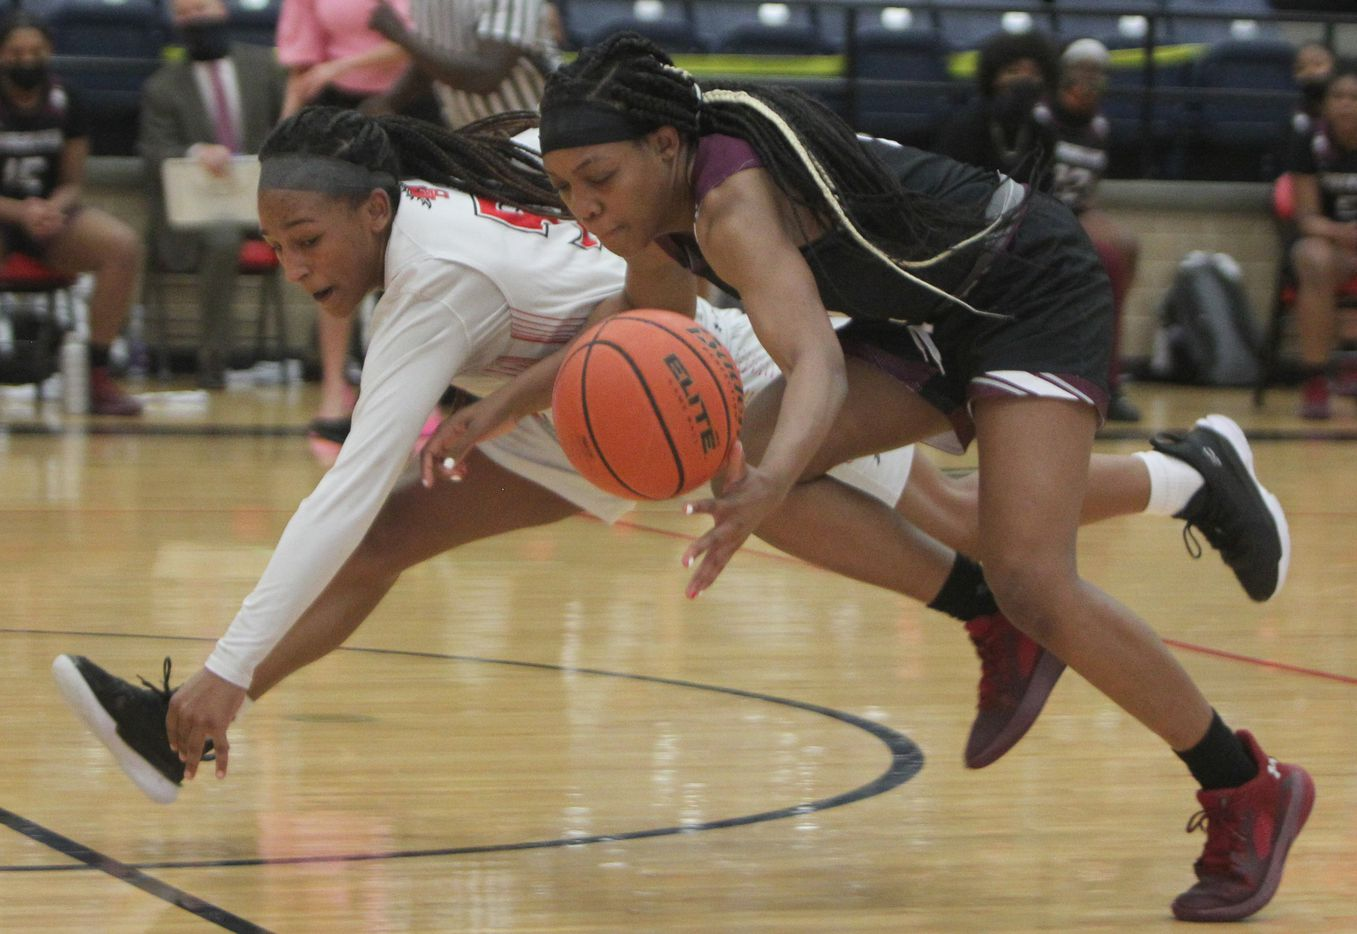 Mansfield Legacy guard Savannah Catalon (5), left, battles with Mansfield Timberview guard Chrishawn Coleman (12) for ball possession during 2nd half action. The two teams played their District 8-5A girls basketball game at Mansfield Legacy High school on January 22 , 2021. (Steve Hamm/ Special Contributor)